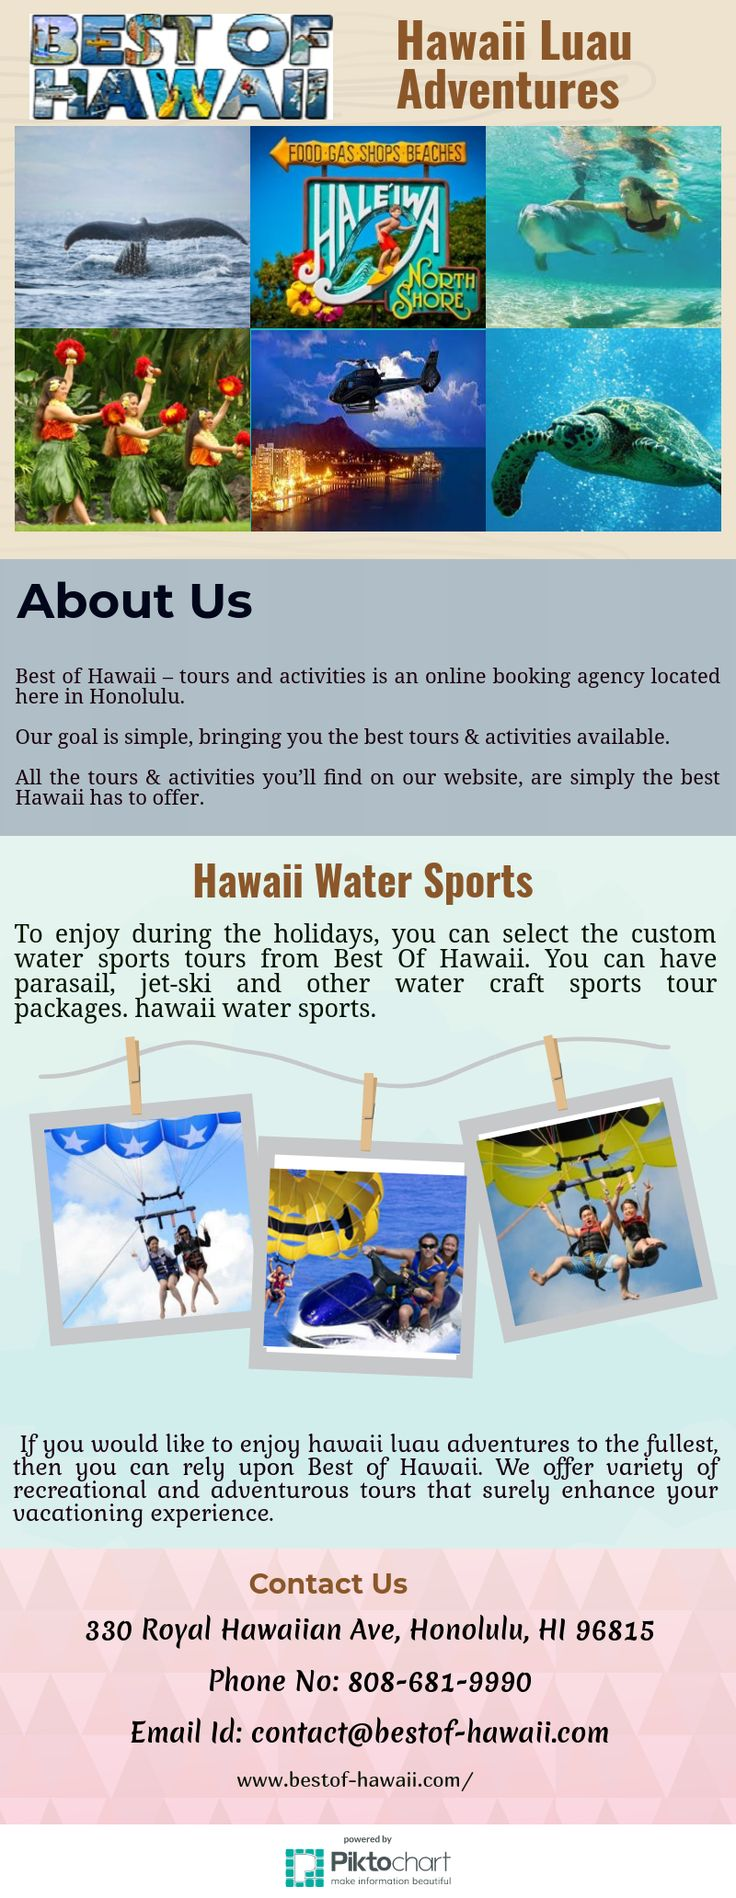 To enjoy hawaii water sports during the holidays, you can select the custom water sports tours from Best Of Hawaii. You can have parasail, jet-ski and other water craft sports tour packages.